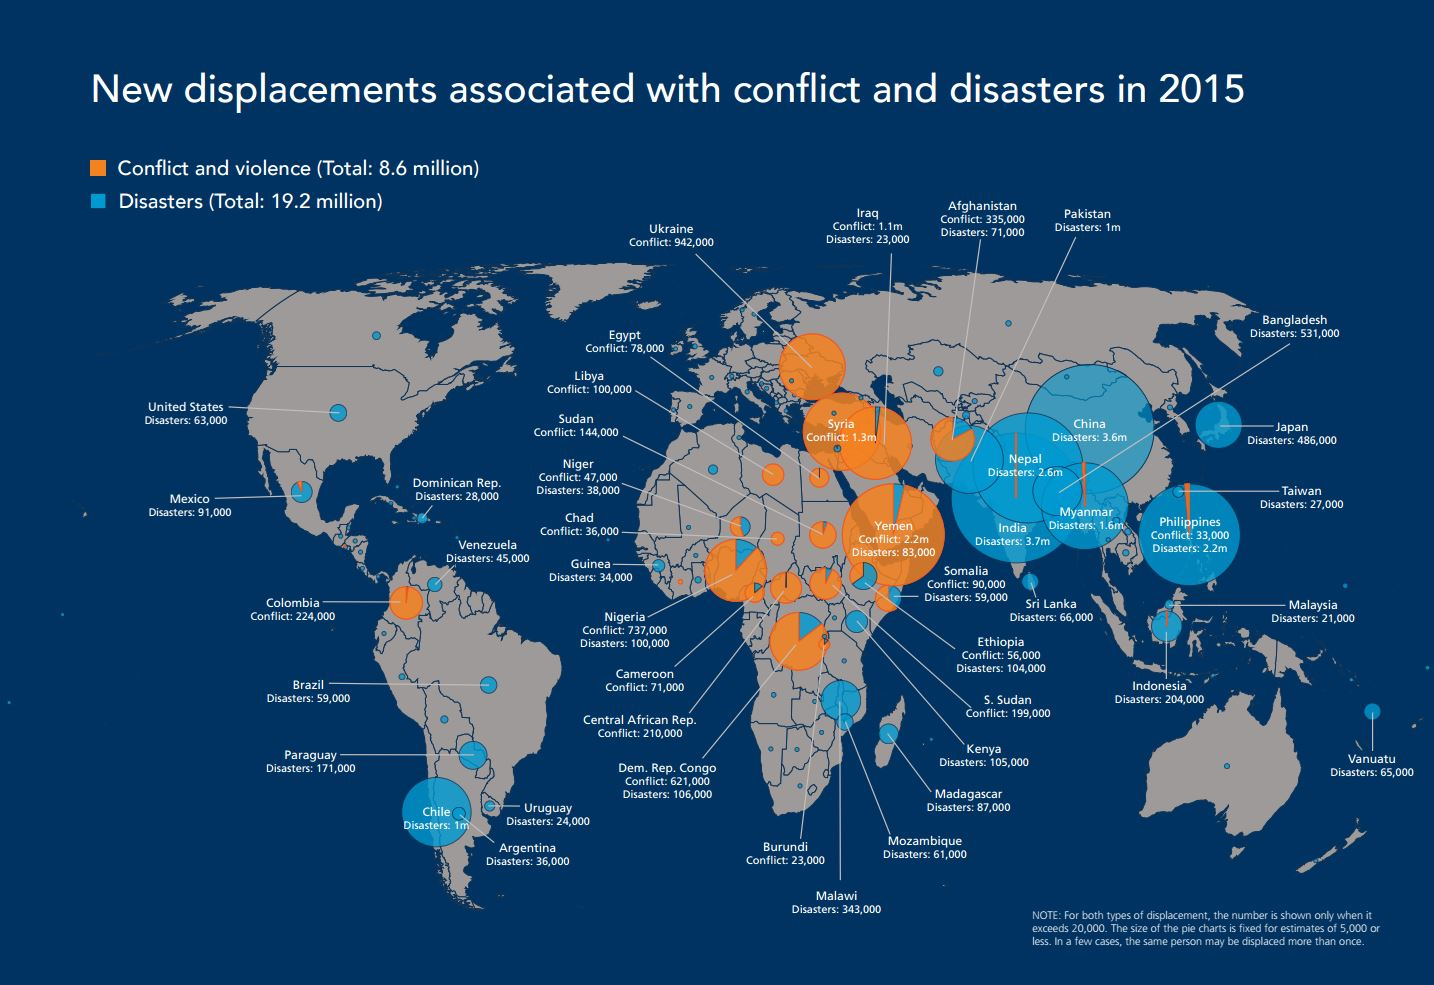 In 2015, 8.6 million people were newly displaced due to conflict and violence, and 19.2 million more people were displaced due to disasters. / Internal Displacement Monitoring Centre